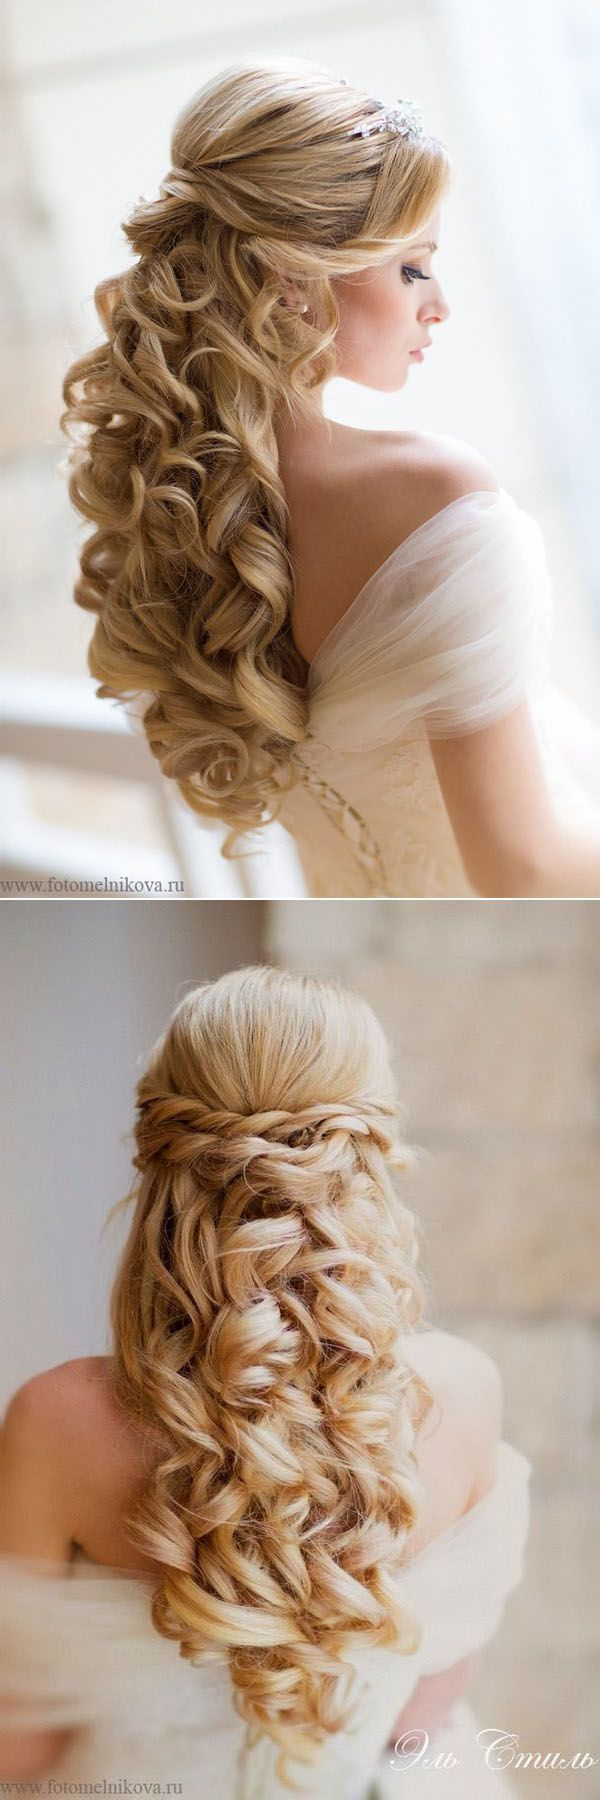 20 Awesome Half Up Half Down Wedding Hairstyle Ide…